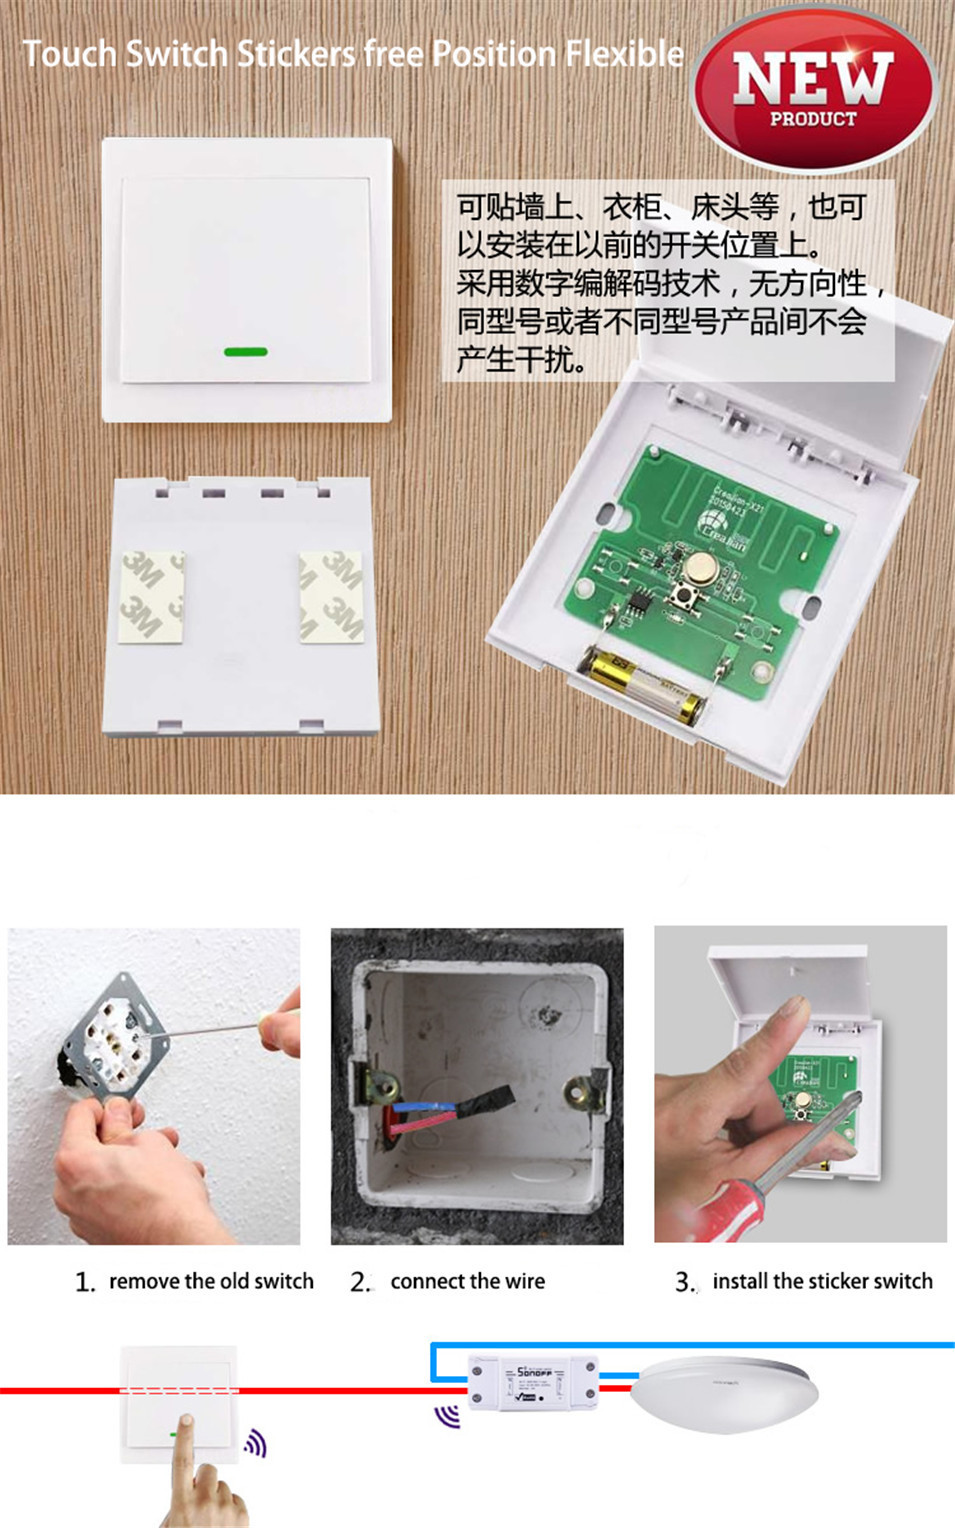 Sonoff 1 gang Touch Switch Remote controller ONOff Light Switch with Stickers Single Channel free position for Sonoff T1 switch-2